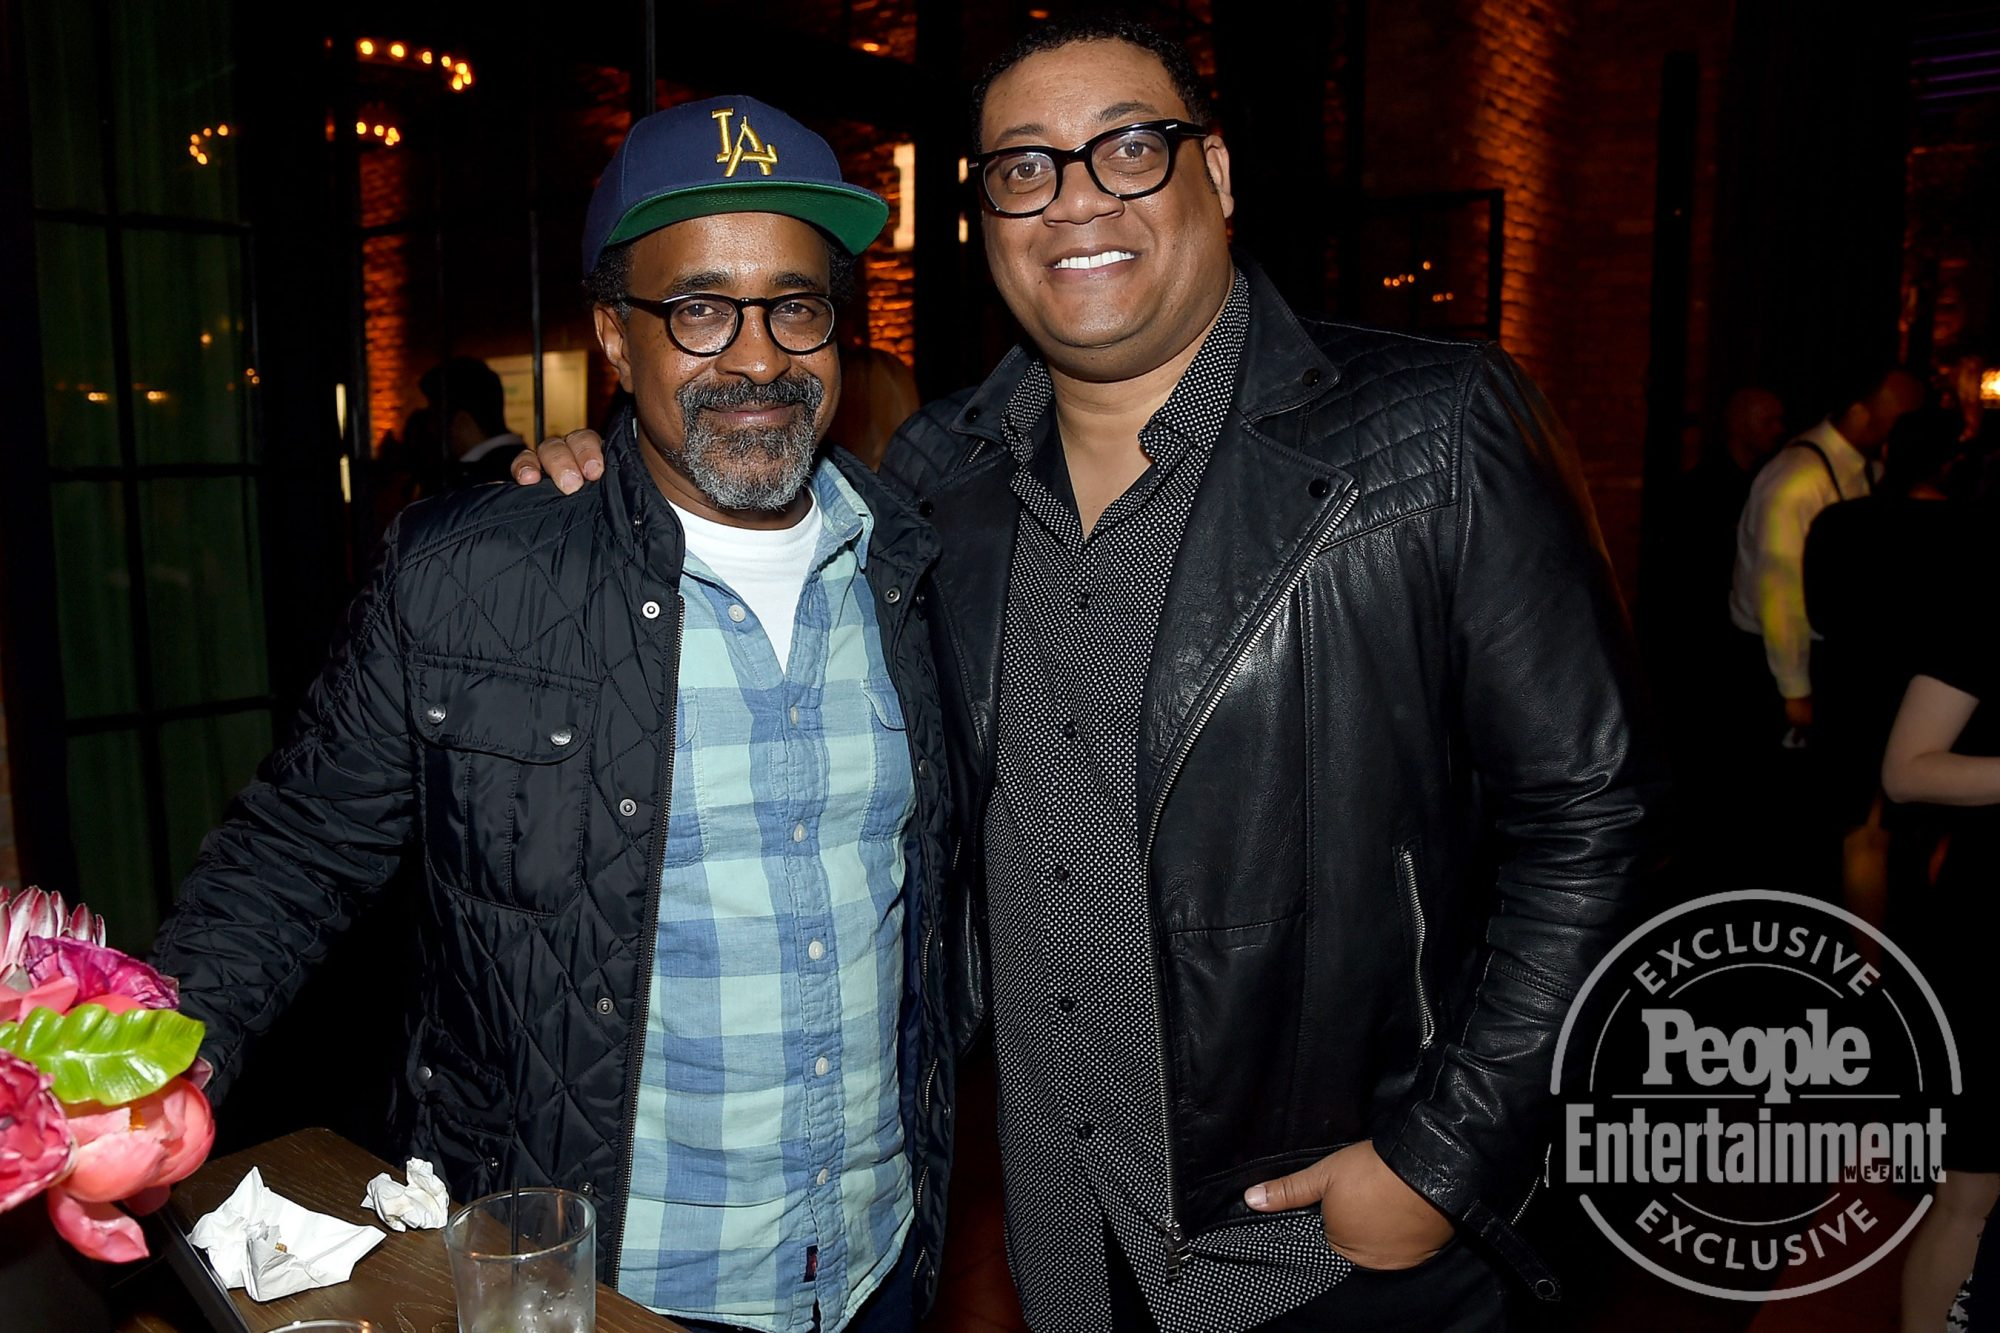 Tim Meadows (Schooled) and Cedric Yarbrough (Speechless)